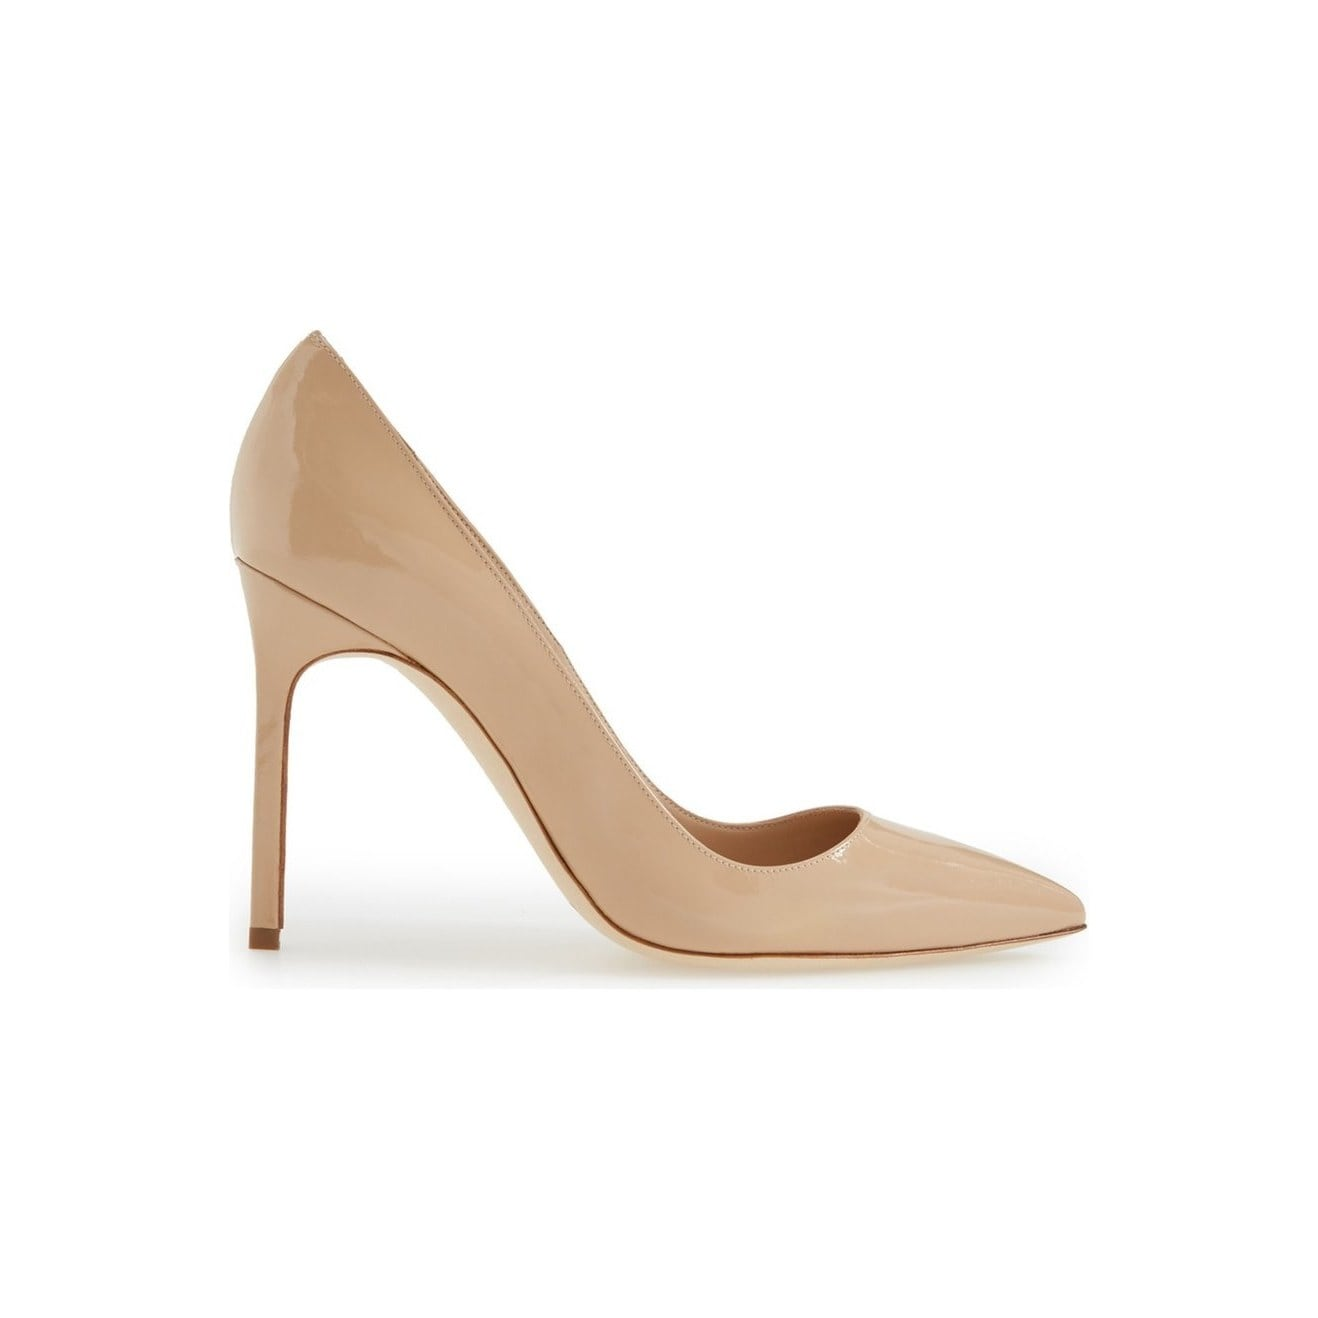 522d045450469 Shop Manolo Blahnik BB Nude Patent Leather Pumps - On Sale - Free Shipping  Today - Overstock - 12544876 - 5.5